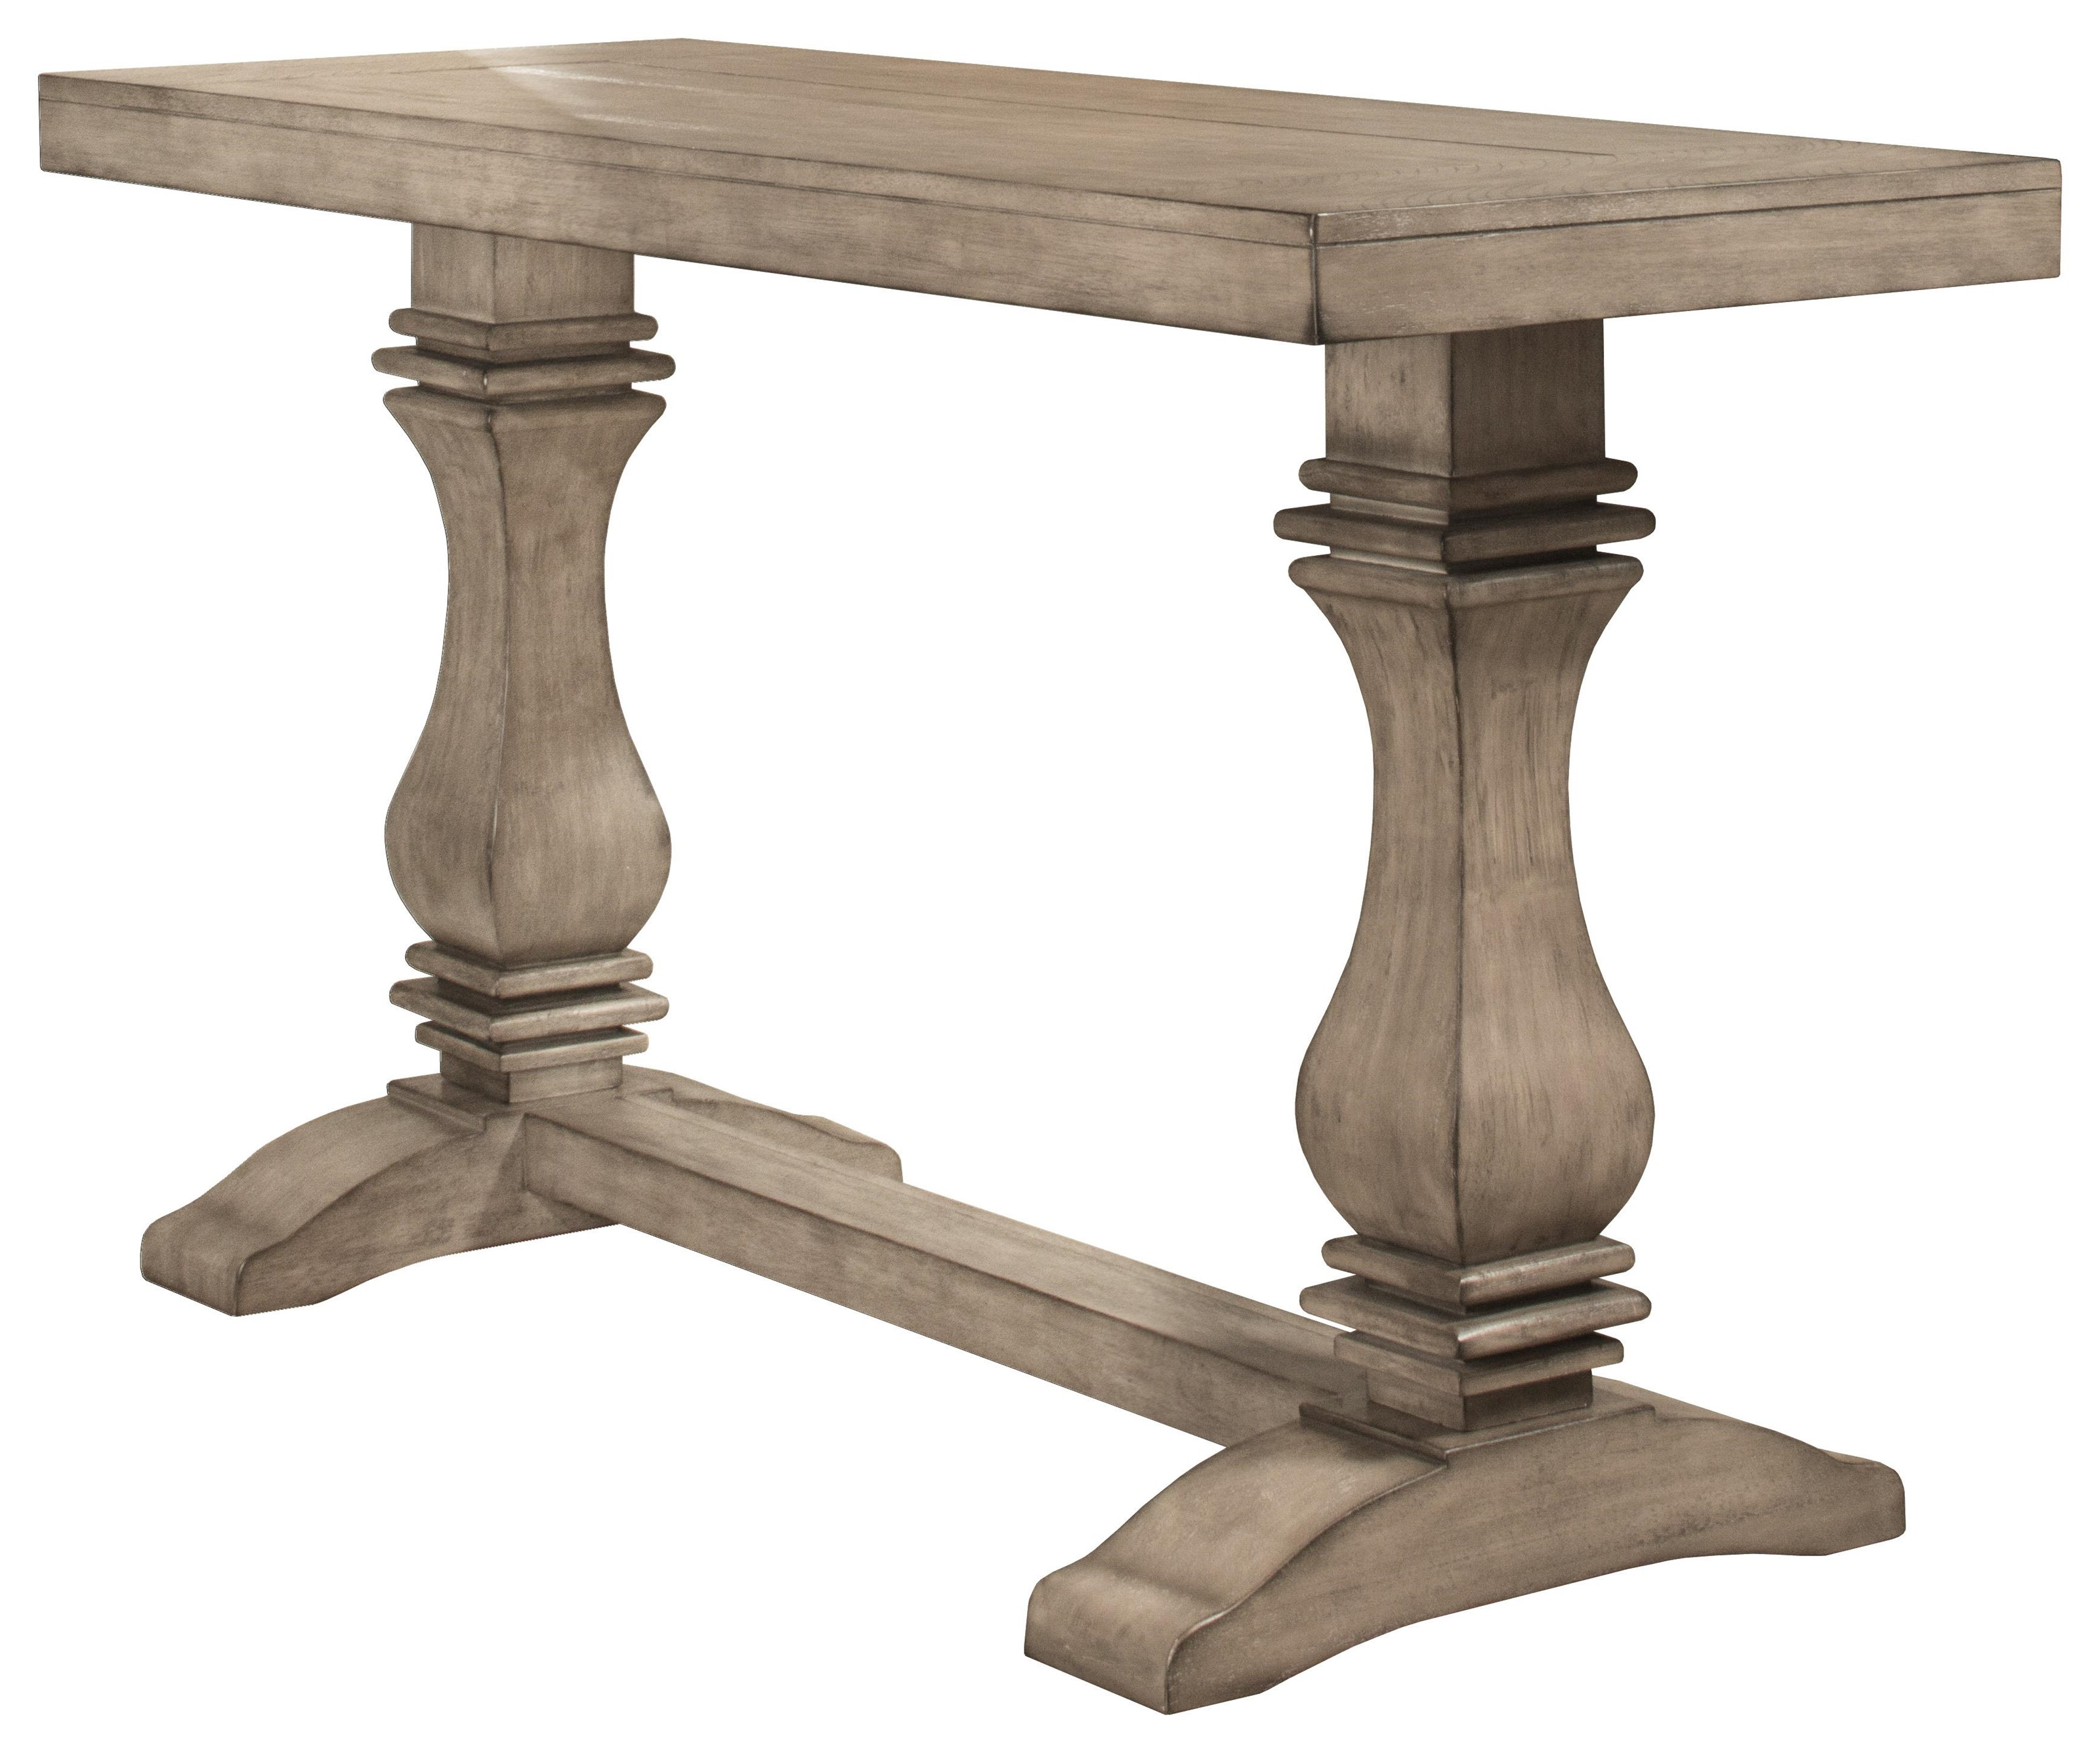 Arabella Concole Table by Hillsdale at Stoney Creek Furniture